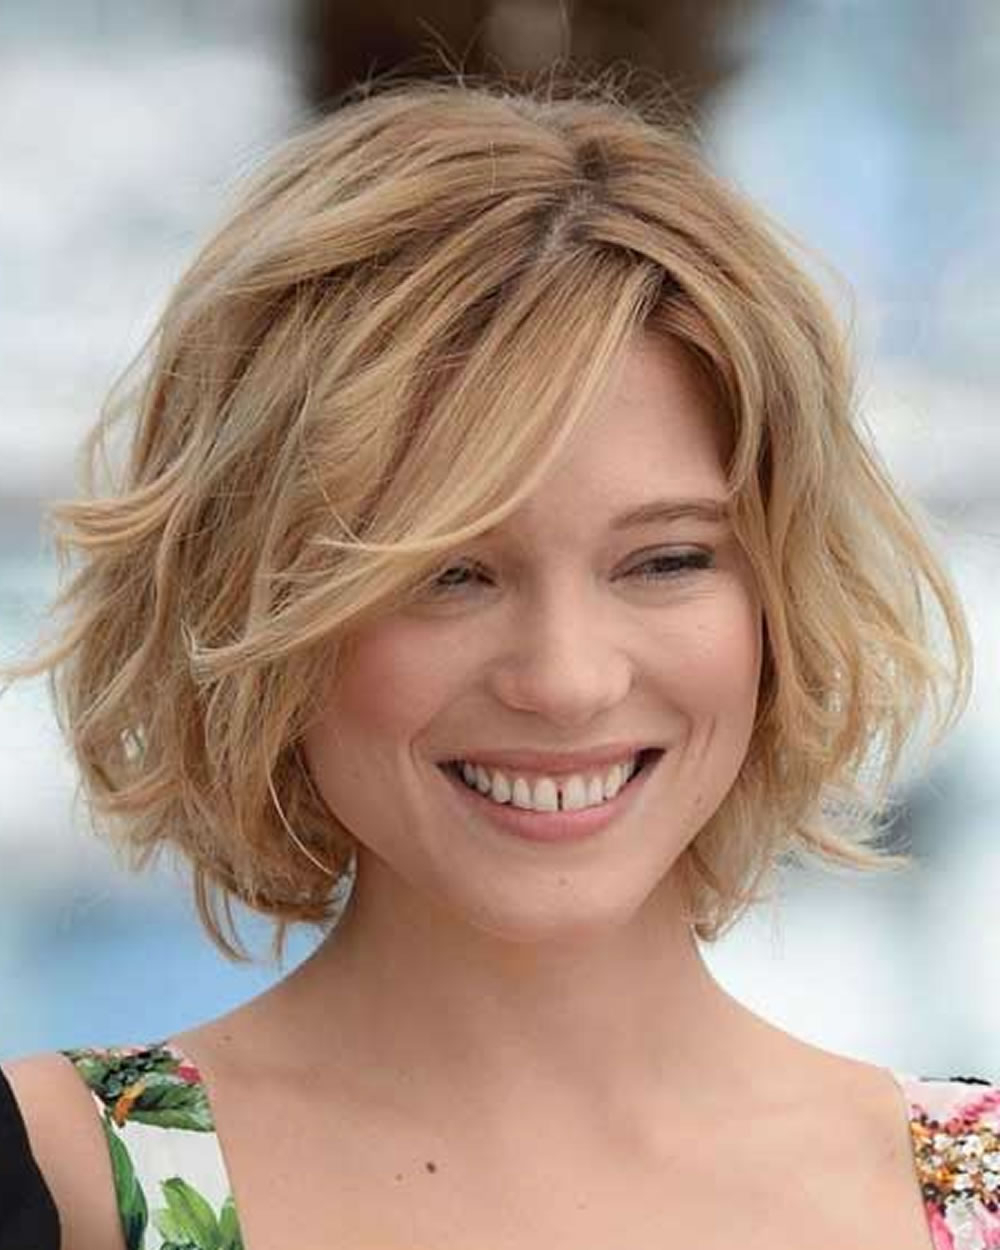 Curly & Wavy Short Hairstyles And Haircuts For Ladies 2018 2019 For Wavy Short Hairstyles For Round Faces (View 4 of 25)